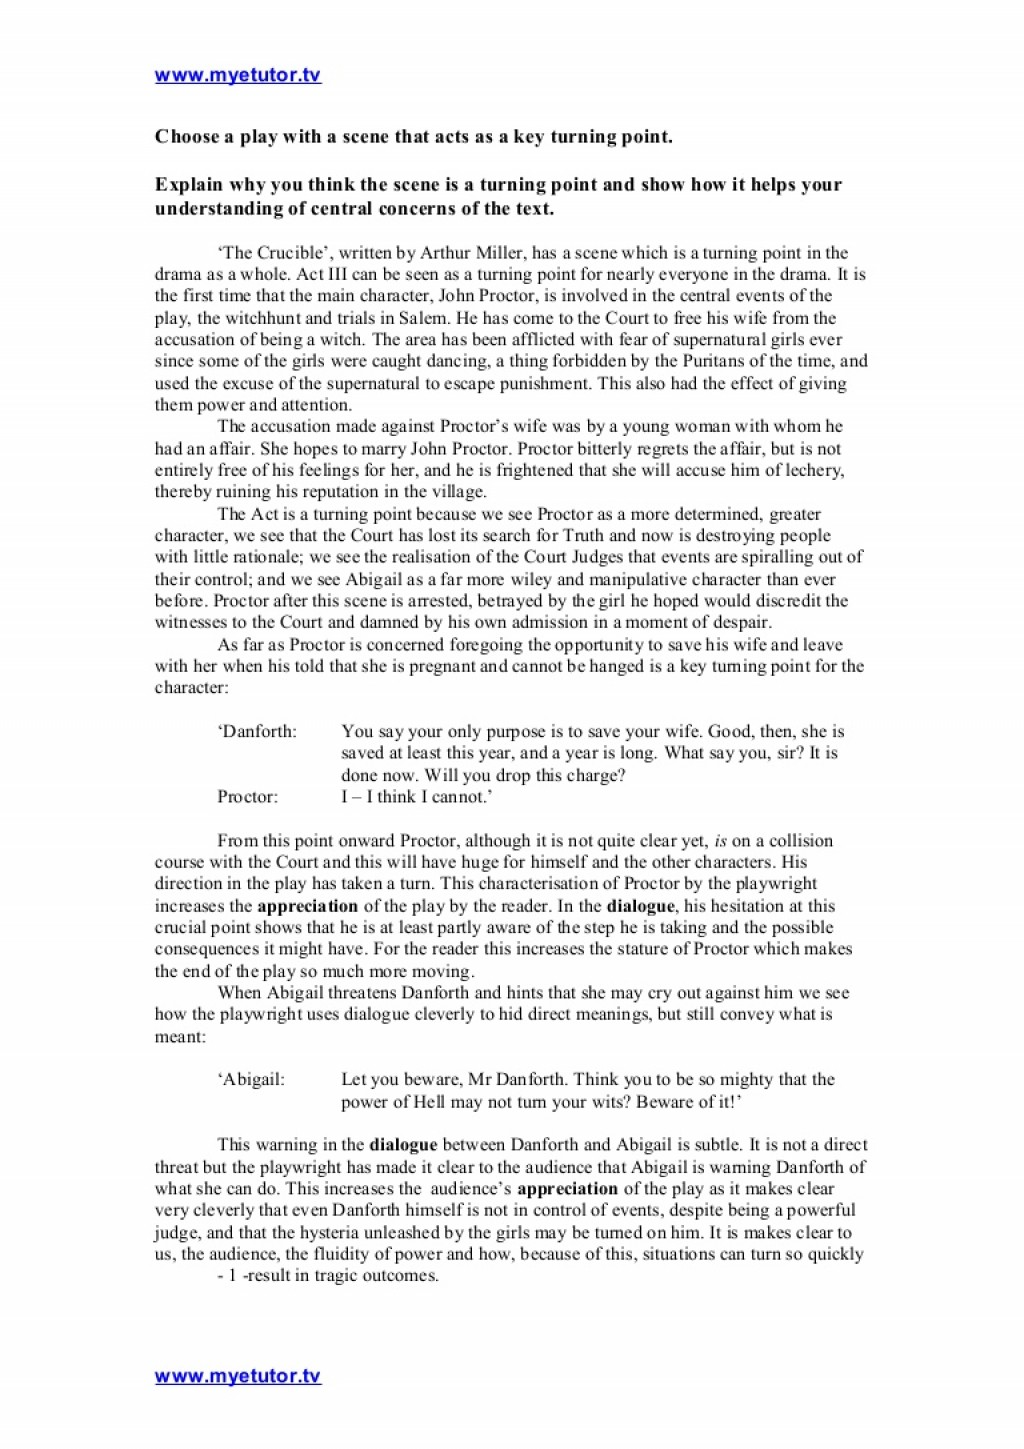 003 Thecrucible Keysceneexemplaressay Phpapp01 Thumbnail Essay On The Crucible Phenomenal And Red Scare Reputation Questions For Act 1 Large